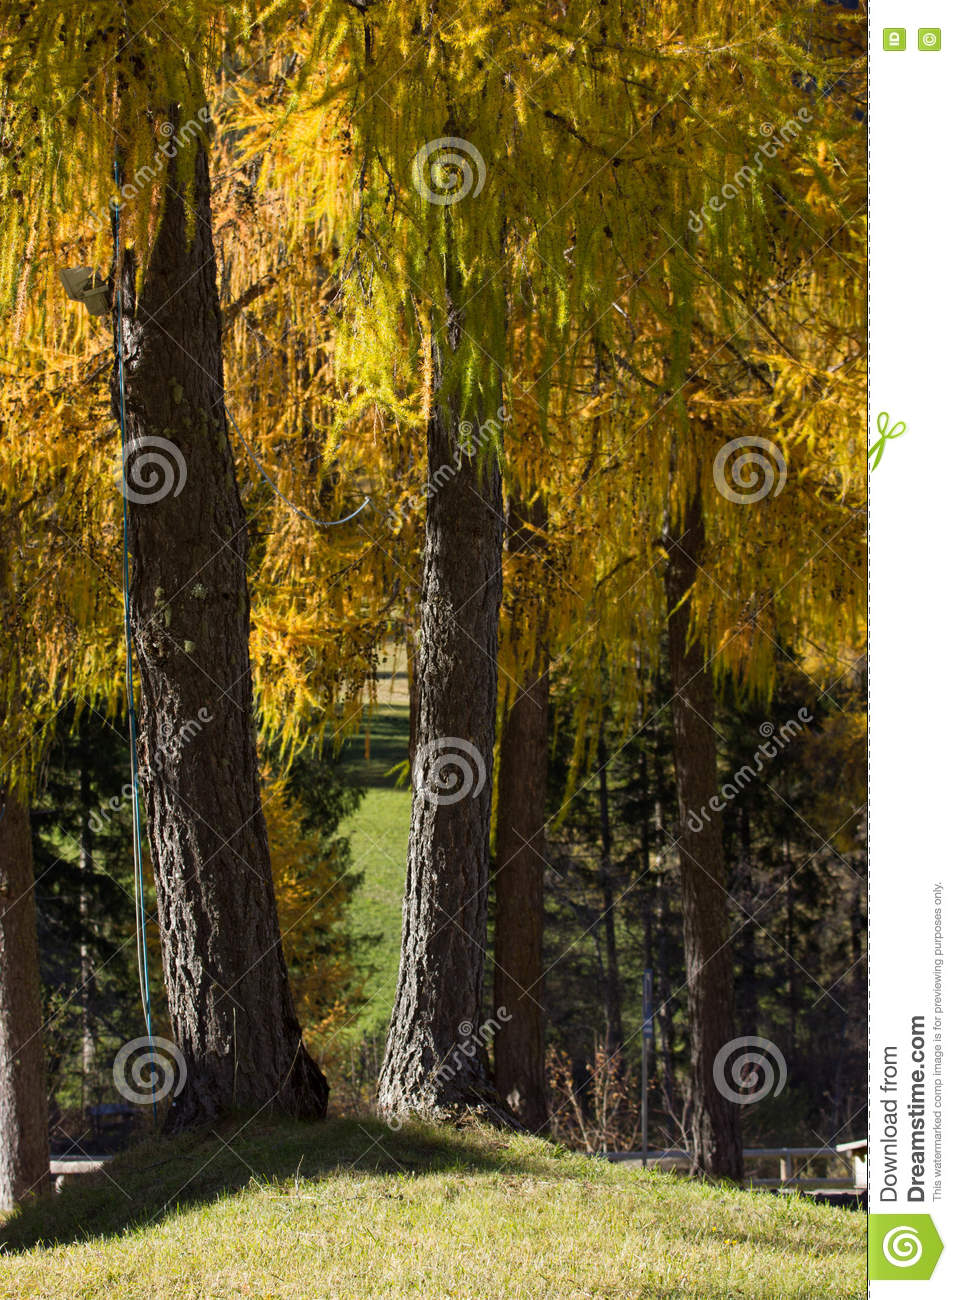 Larix Decidua (larch) Stock Photo.